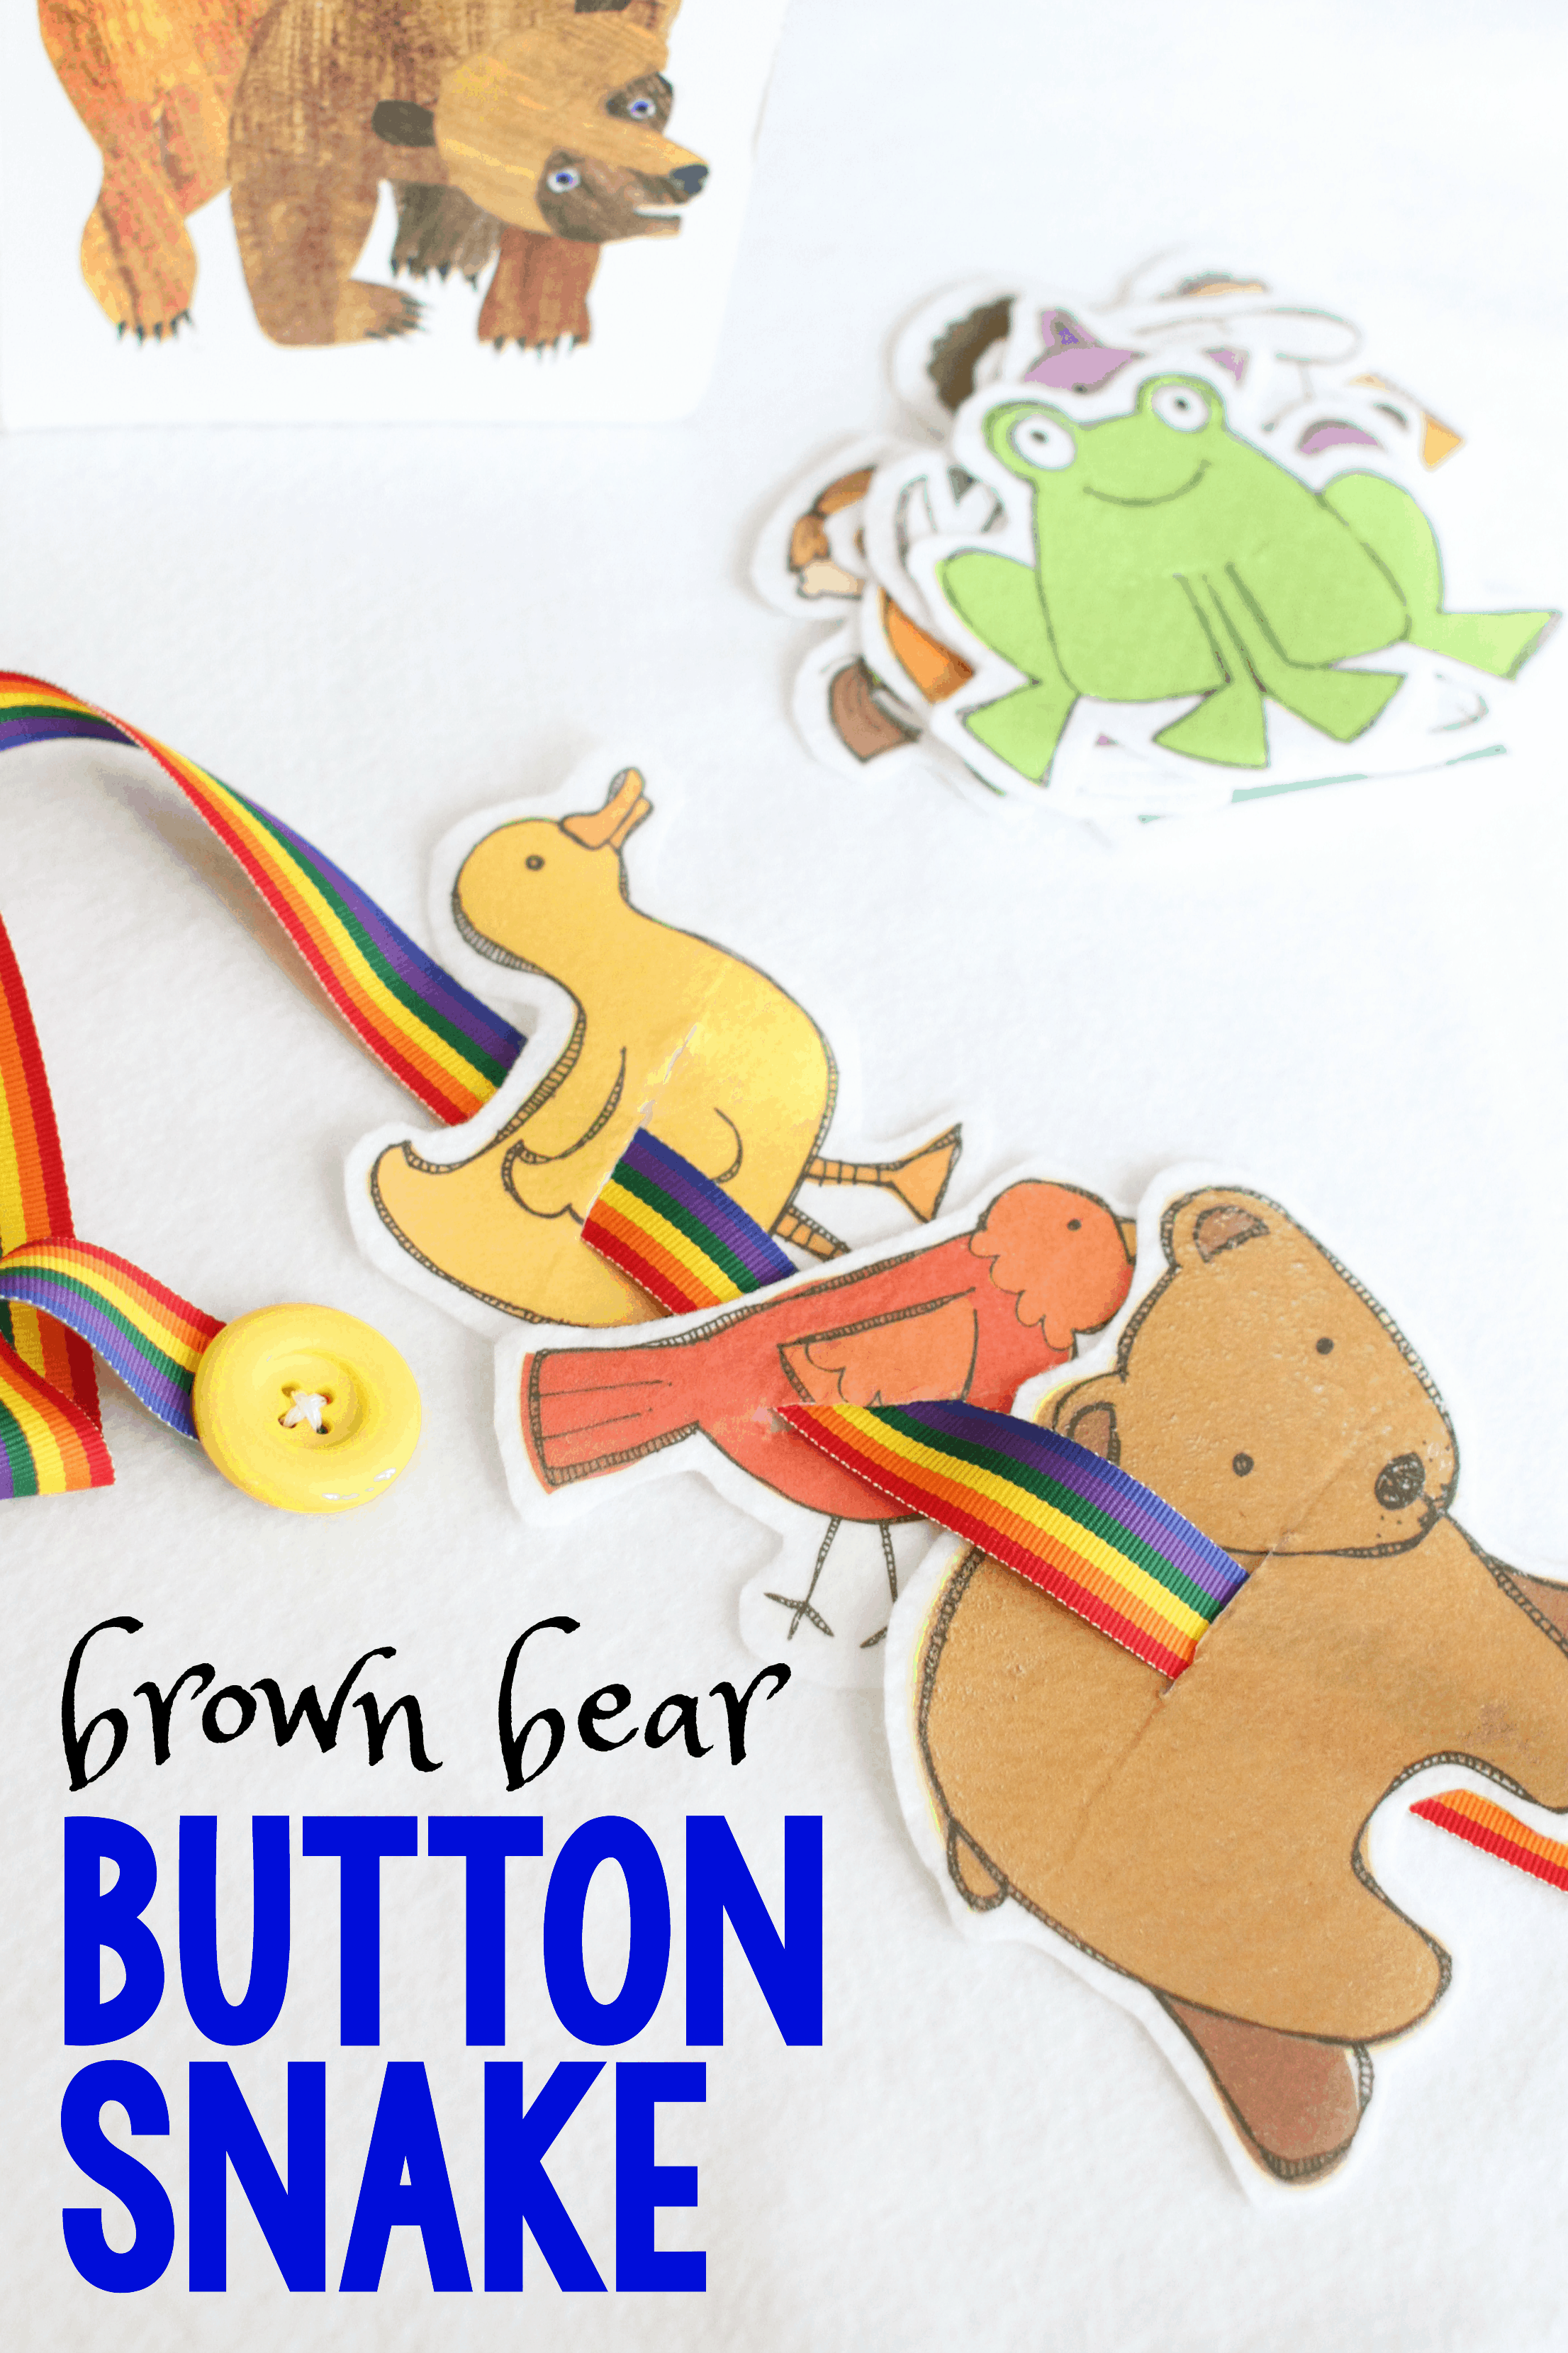 Brown Bear Button Snake Retelling